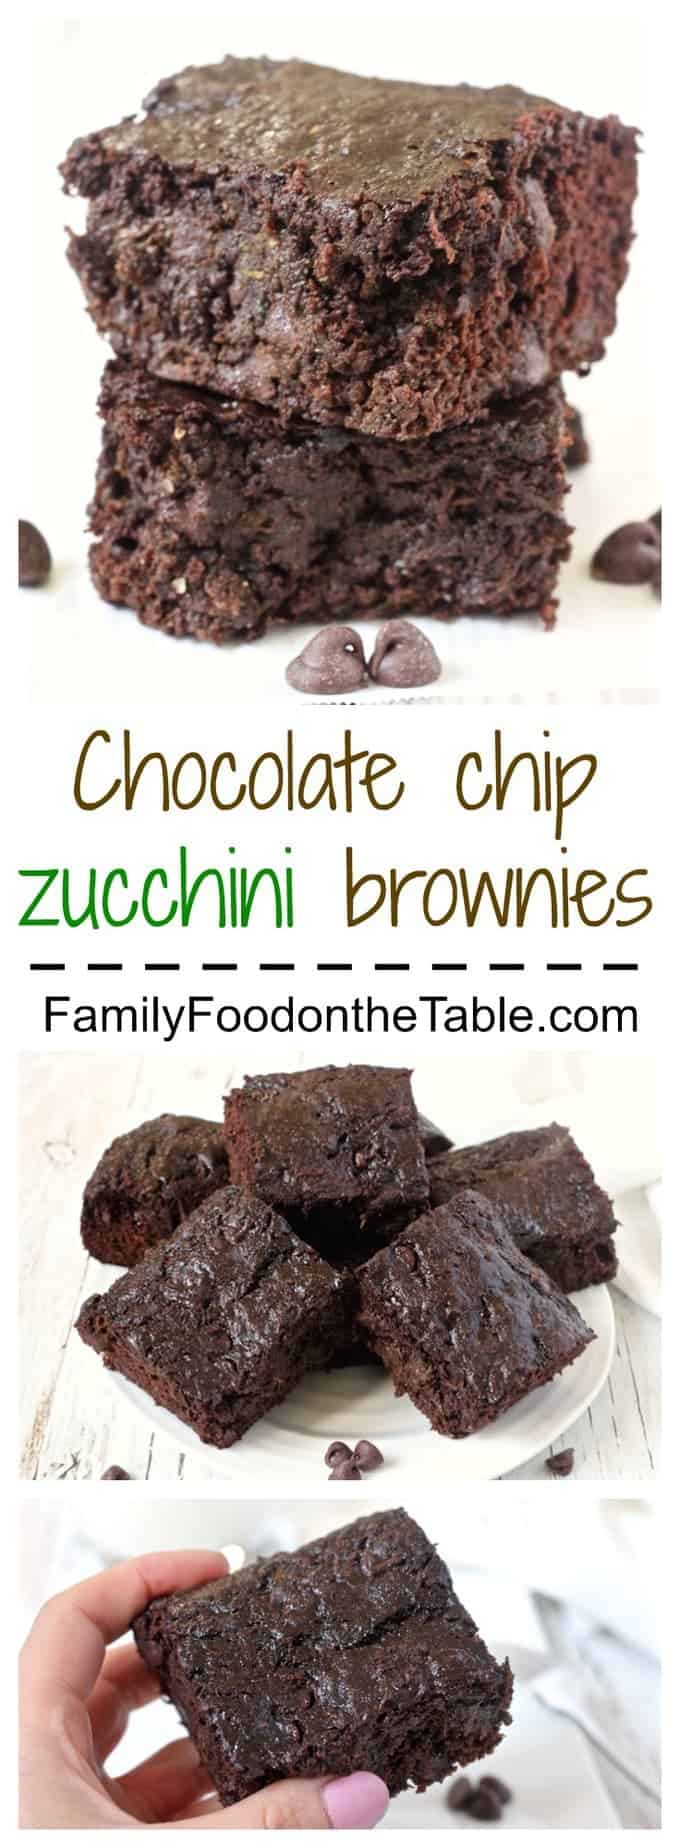 Chocolate chip zucchini brownies - Family Food on the Table